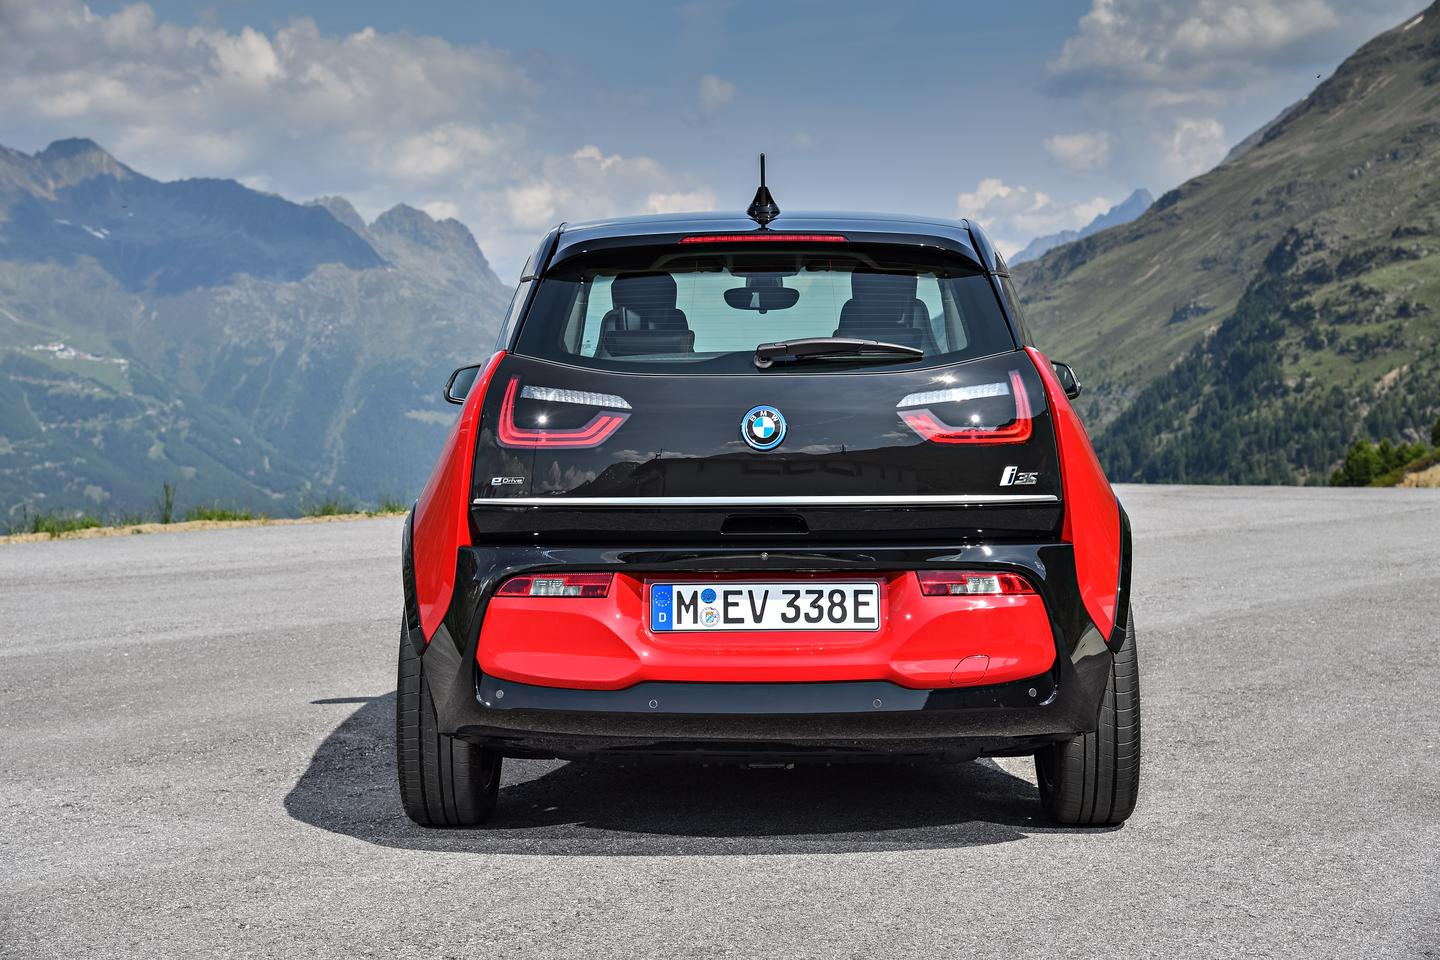 The BMW i3s will debut in Frankfurt at the International Motor Show in September